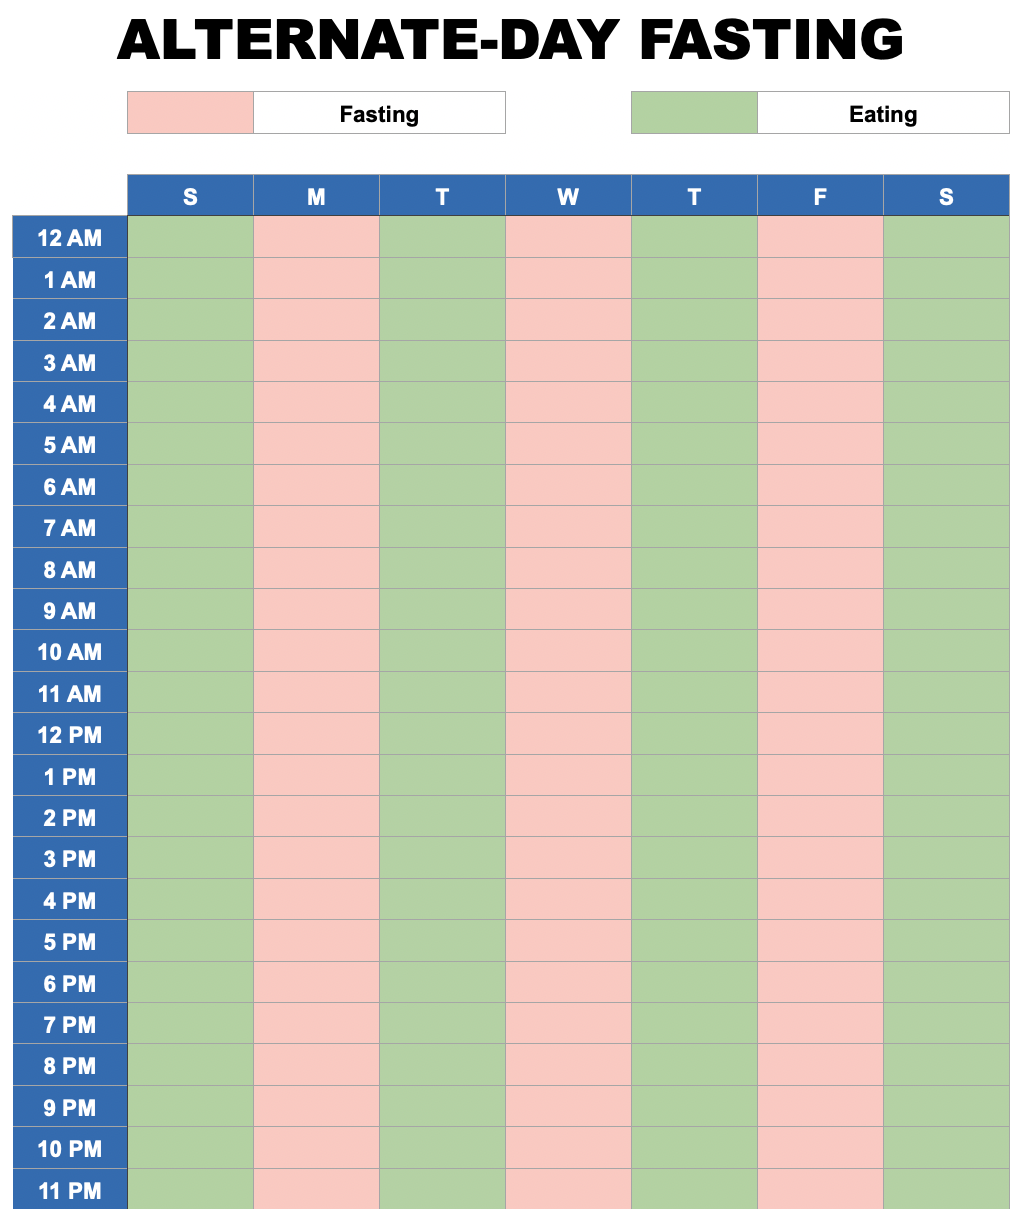 Intermittent Fasting Meal Plan Ryan and Alex Duo Life Alternate-Day Fasting Schedule